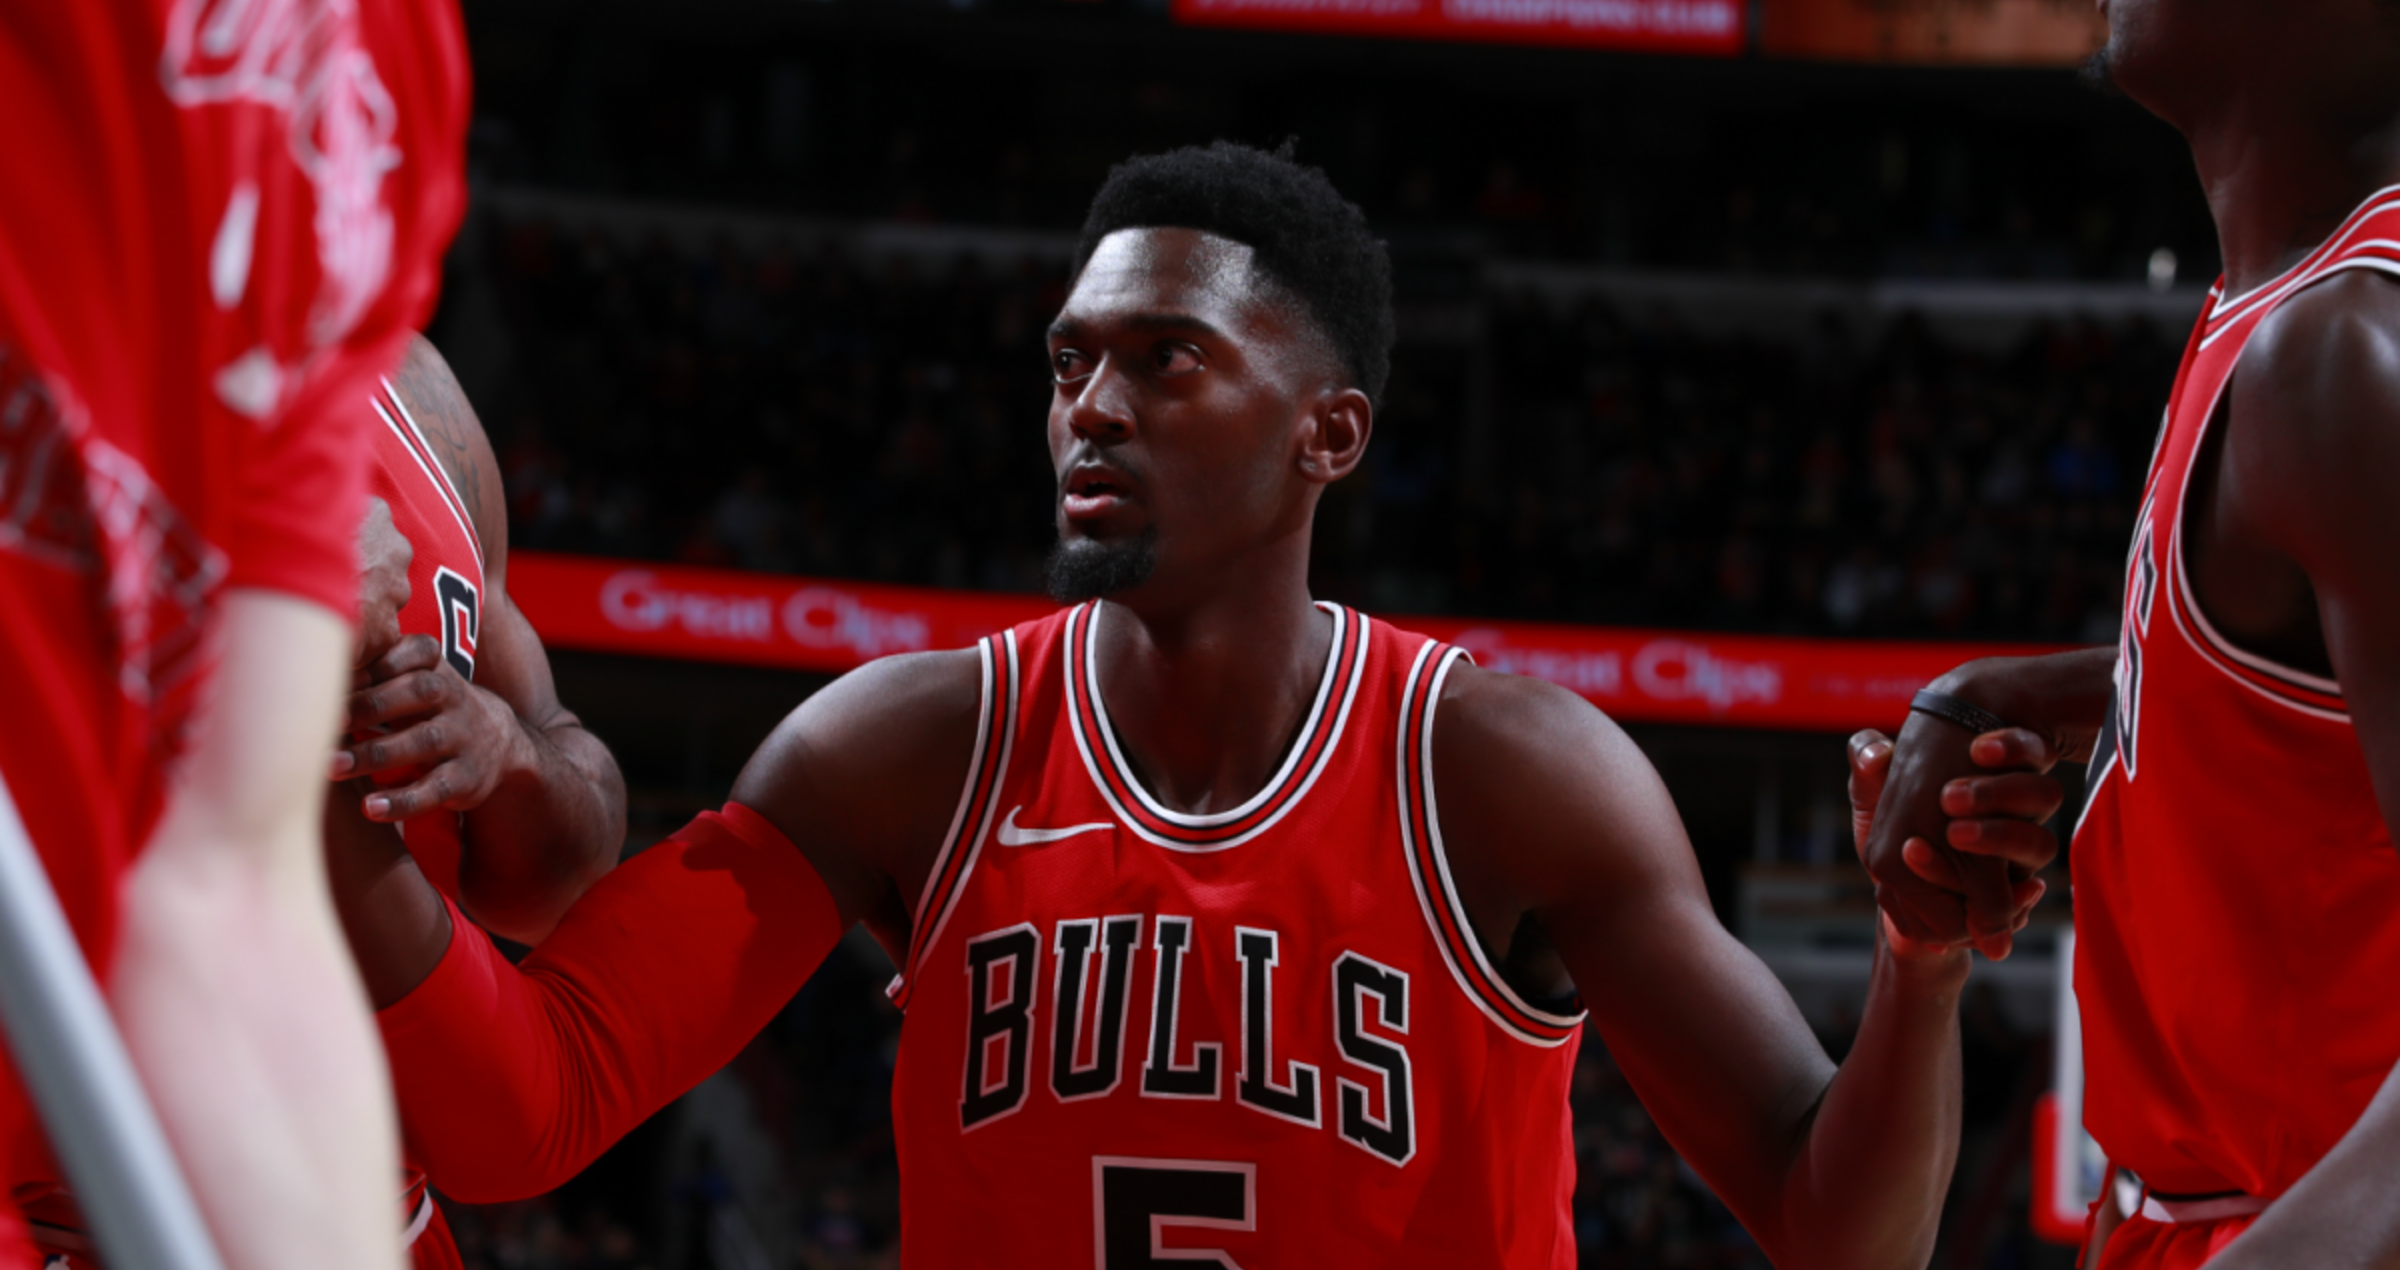 Bobby Portis gets a hand from his teammates during the Bulls' last matchup against the Raptors